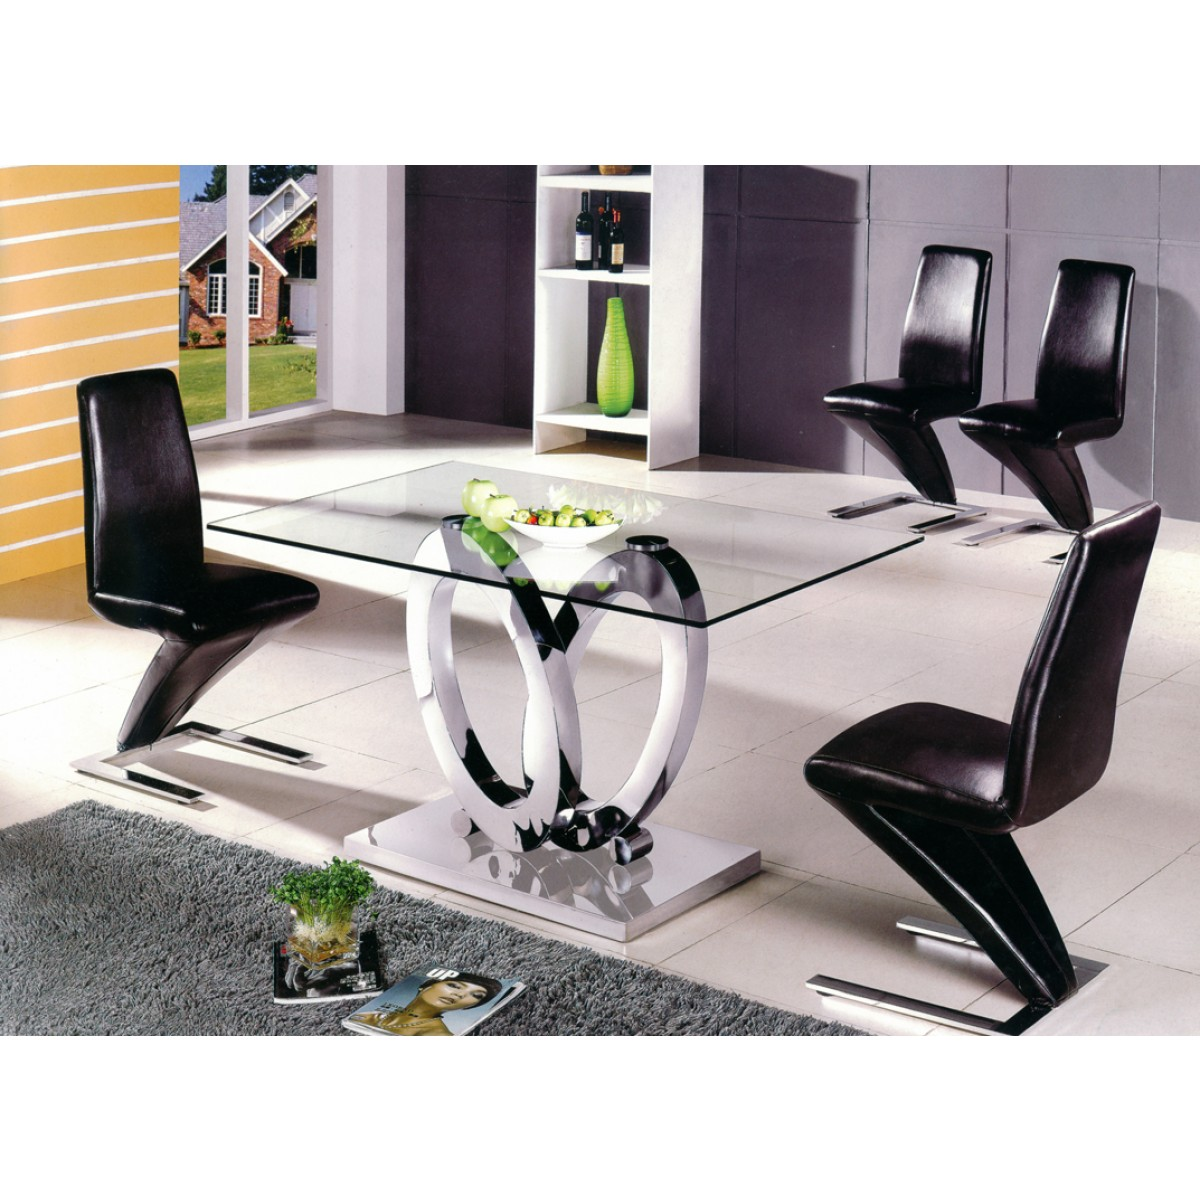 Table manger design ellipse taille au choix tables for Table design salle a manger